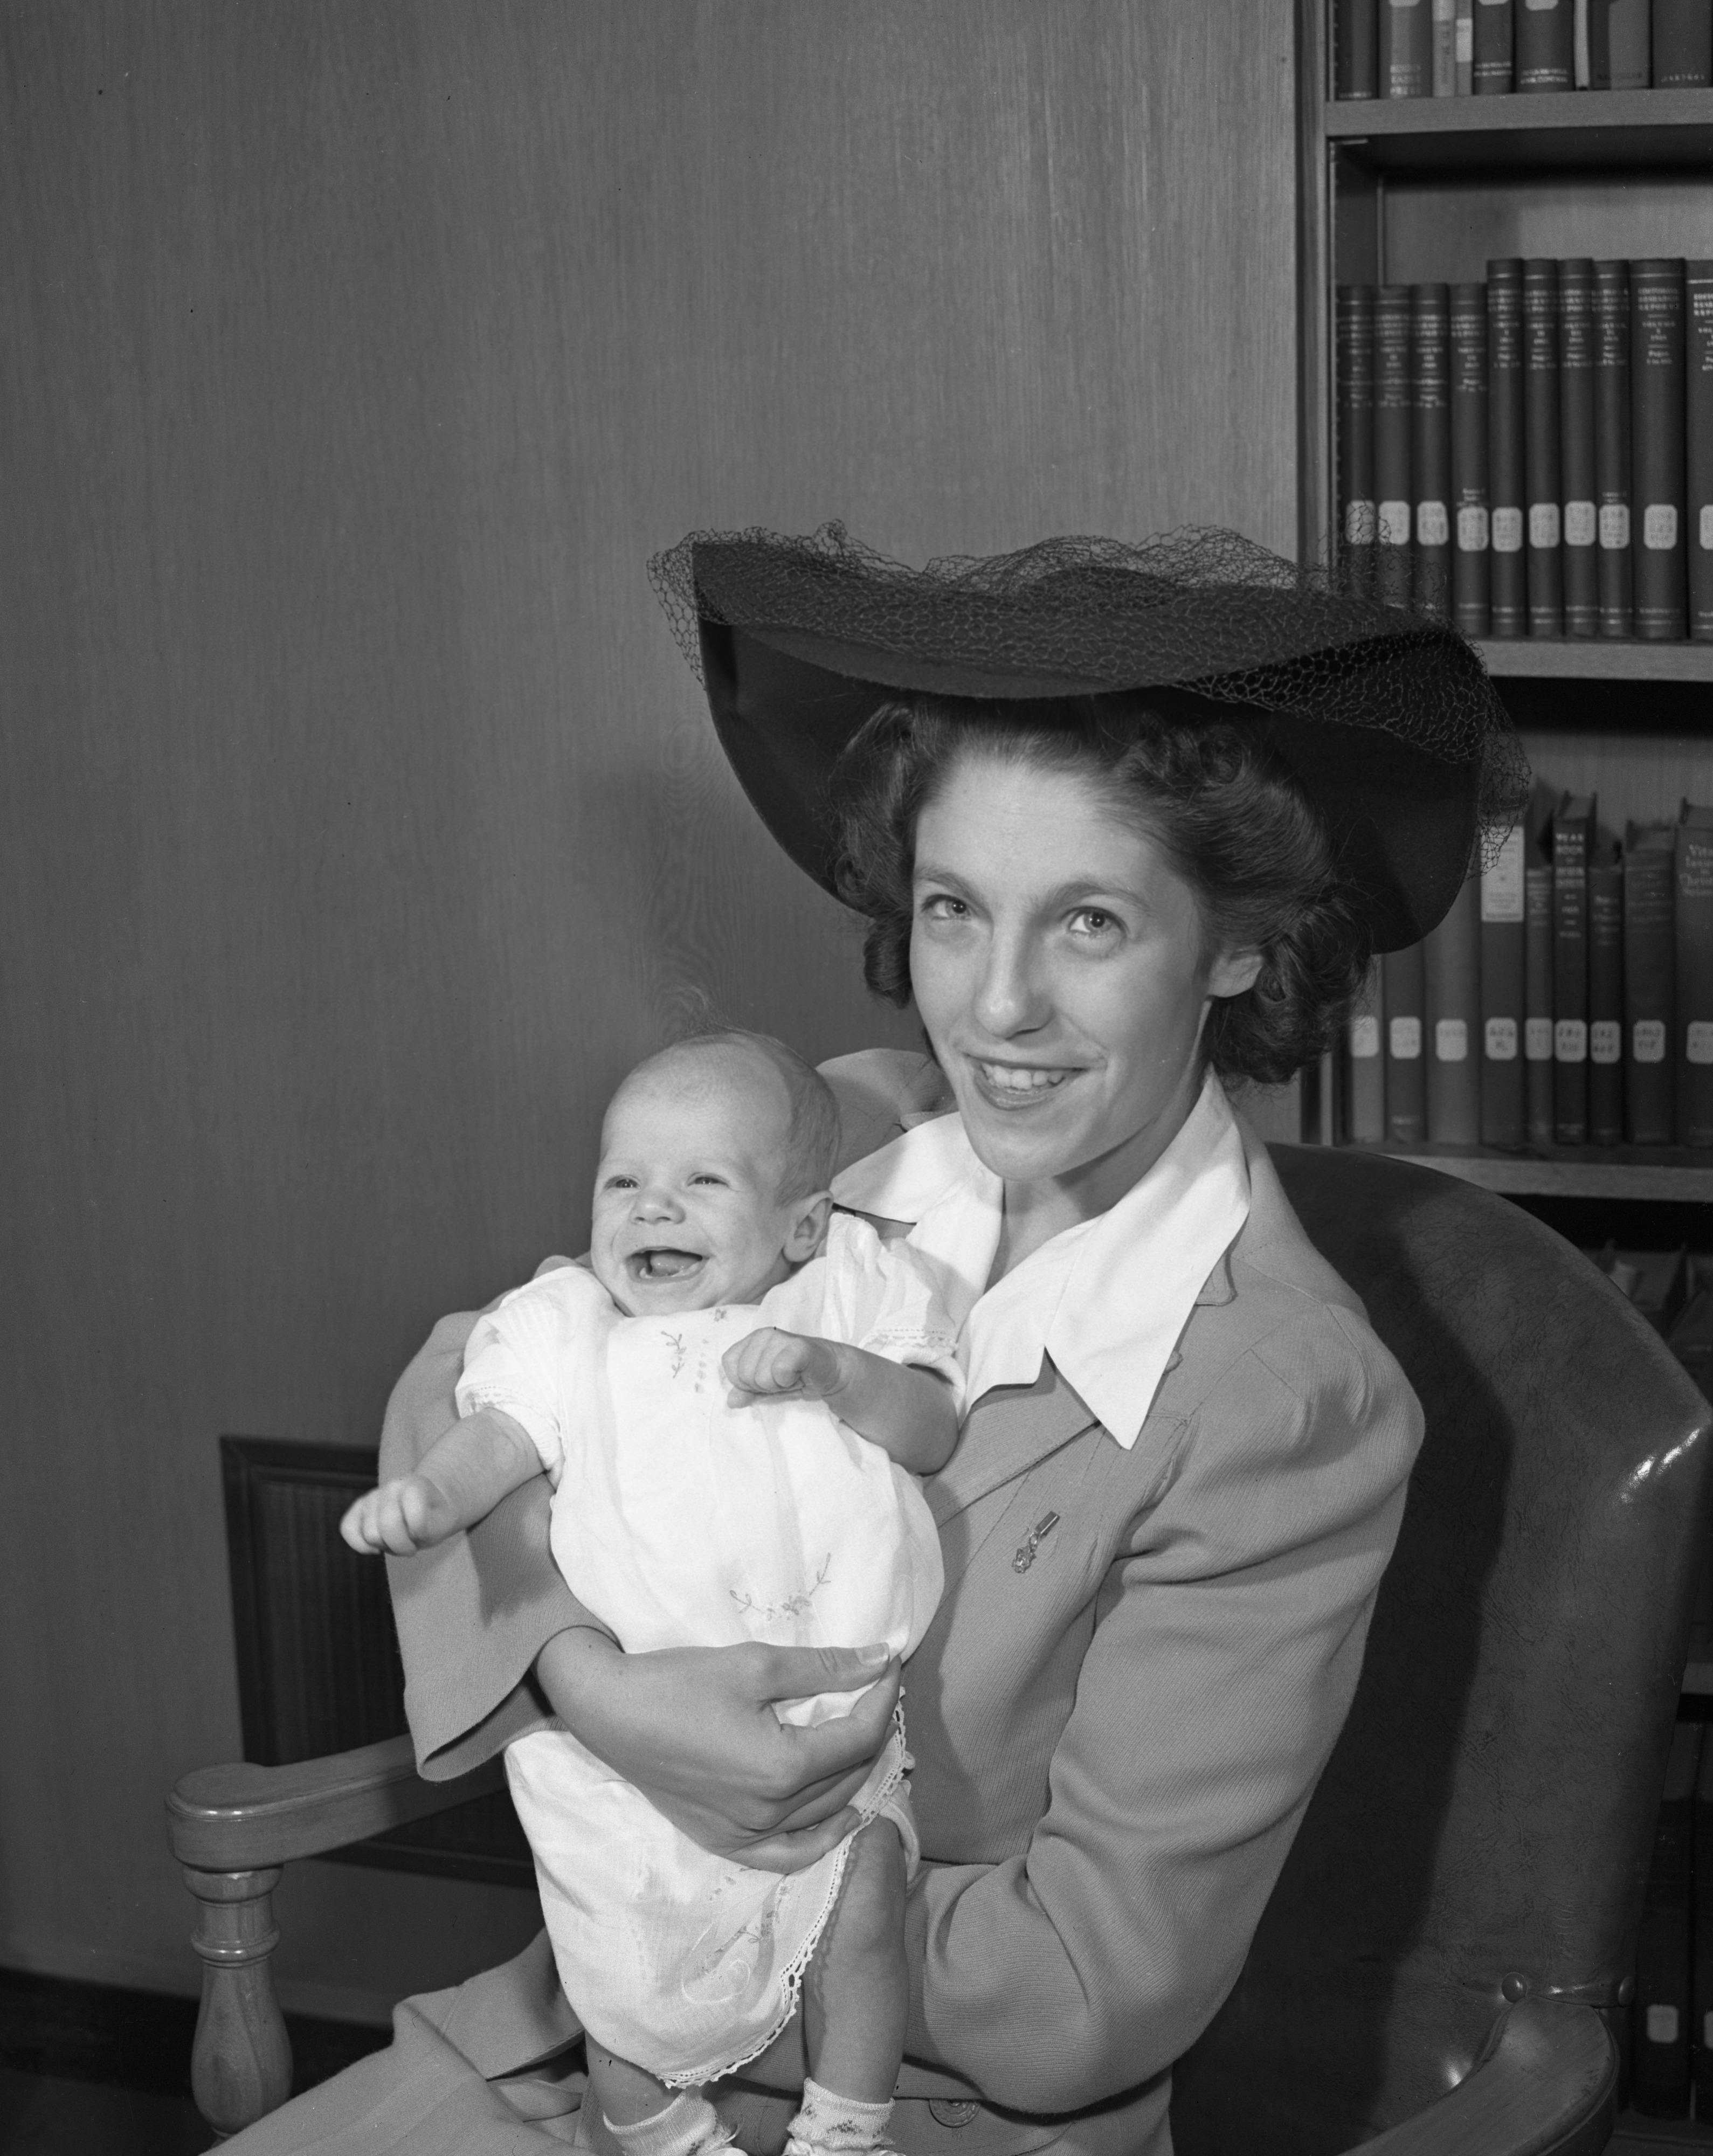 Betty Jane Bell (Mrs. Merton T. Bell) and baby Judy Lee, August 1943 image